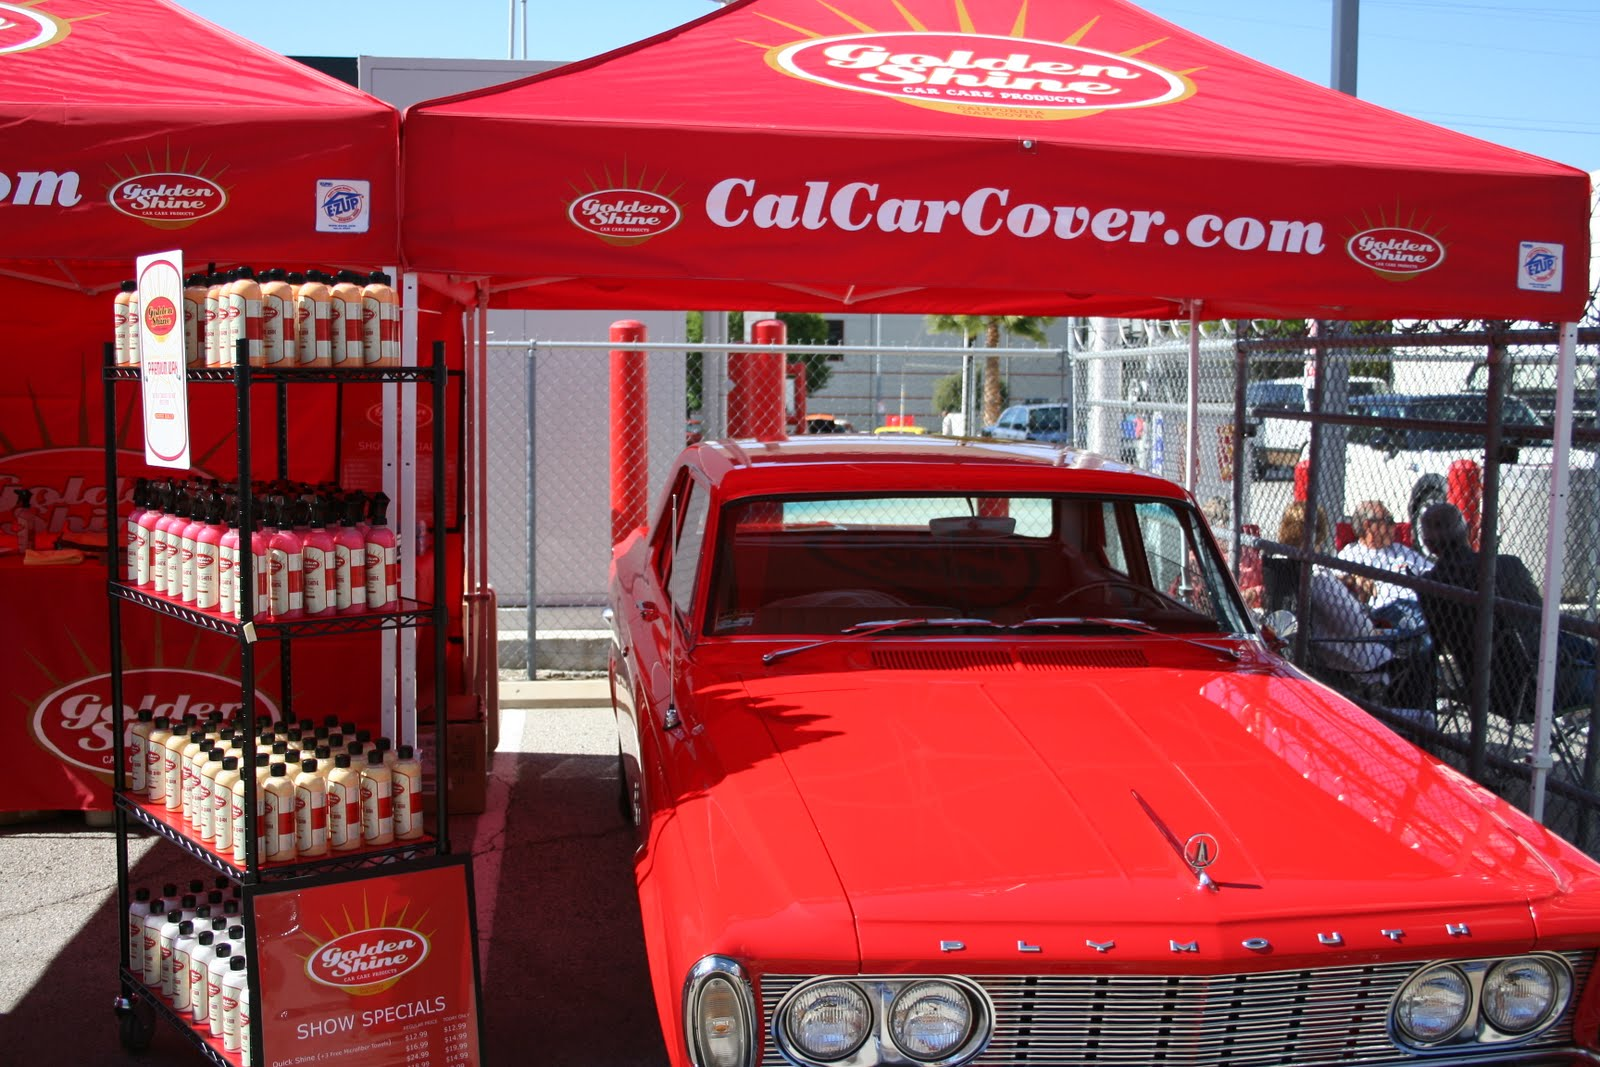 Covering Classic Cars Golden Shine Car Care Products Introduced At - Show car products